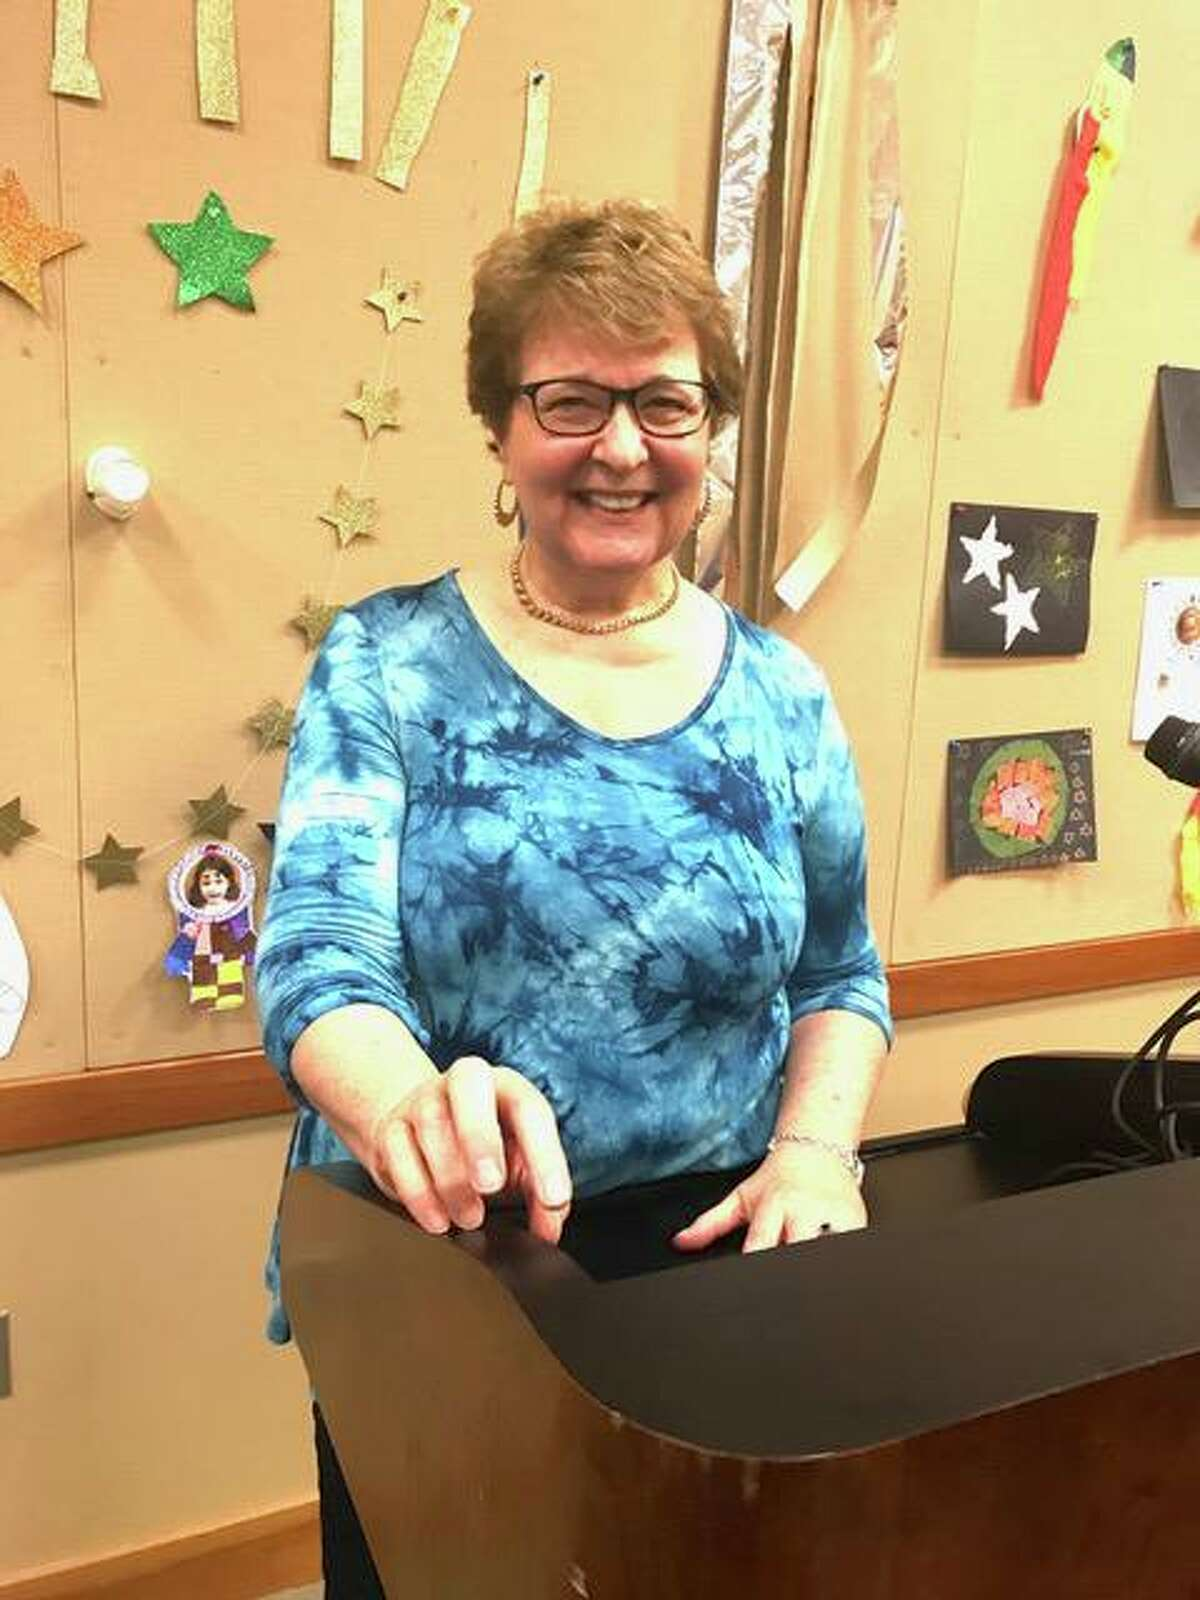 Diane Tunick Morello hosts an Open Mic event at the Cos Cob Library